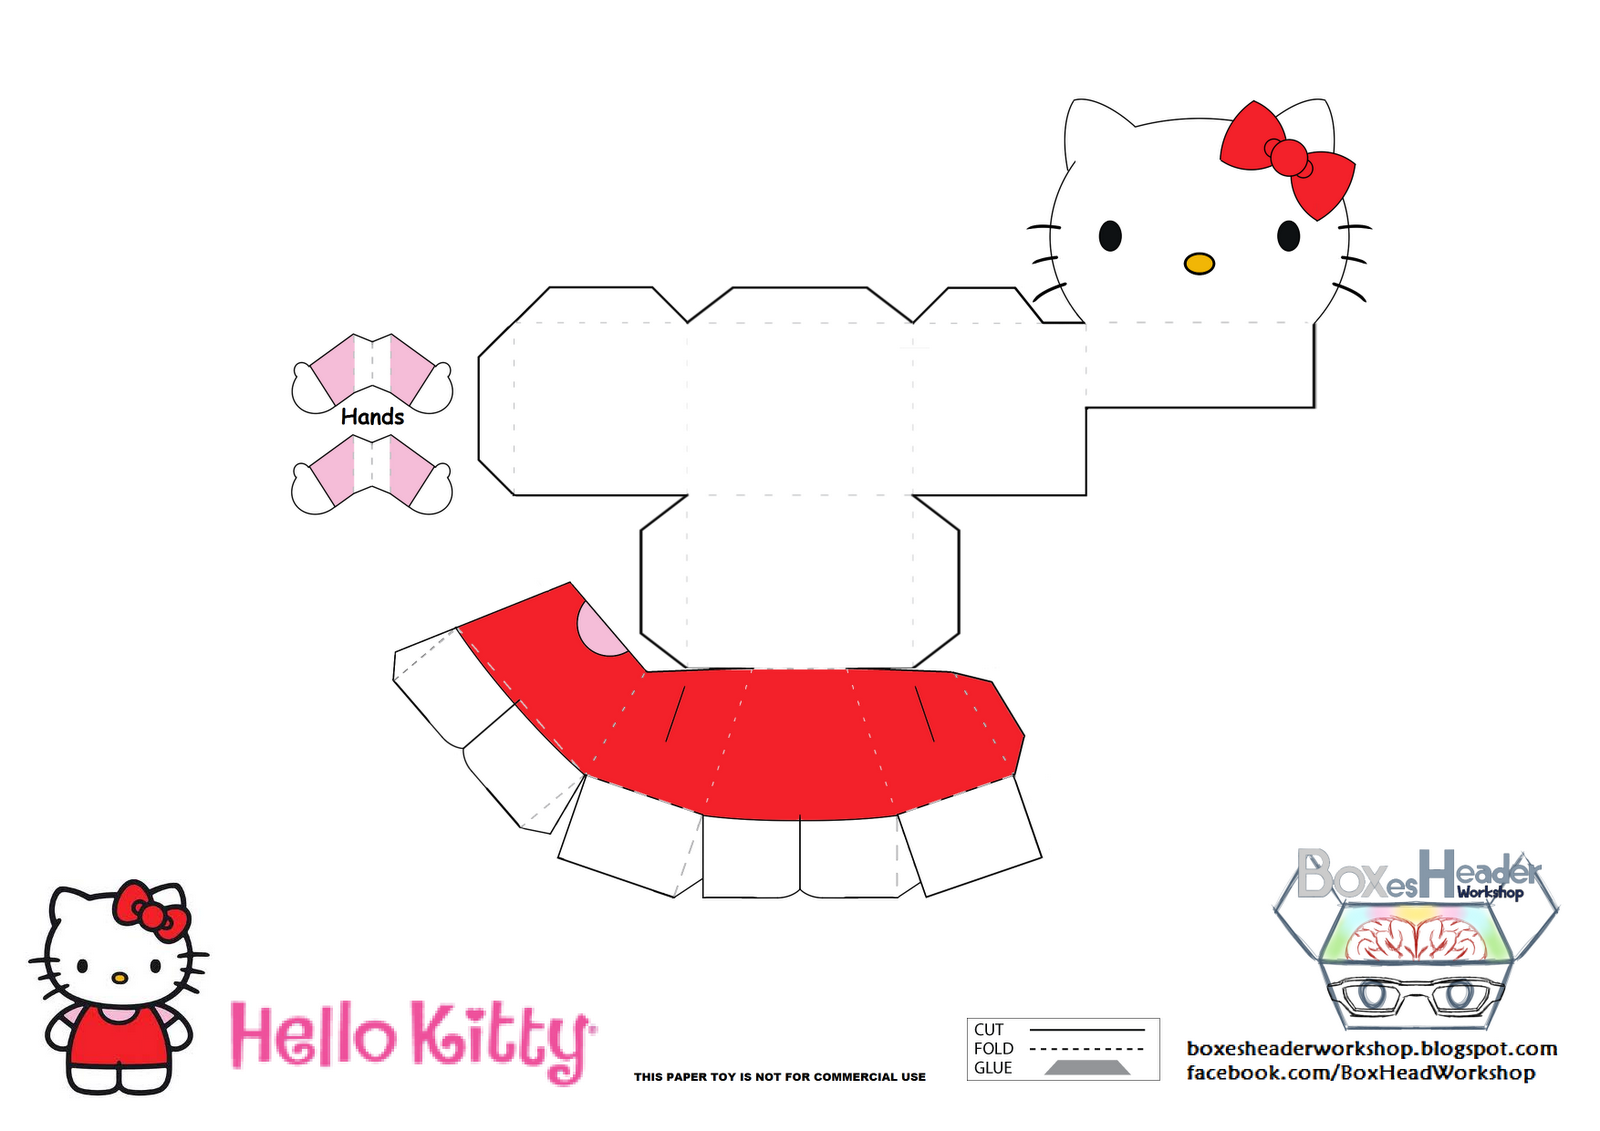 love these hello kitty craft ideas! great for activities for kids at